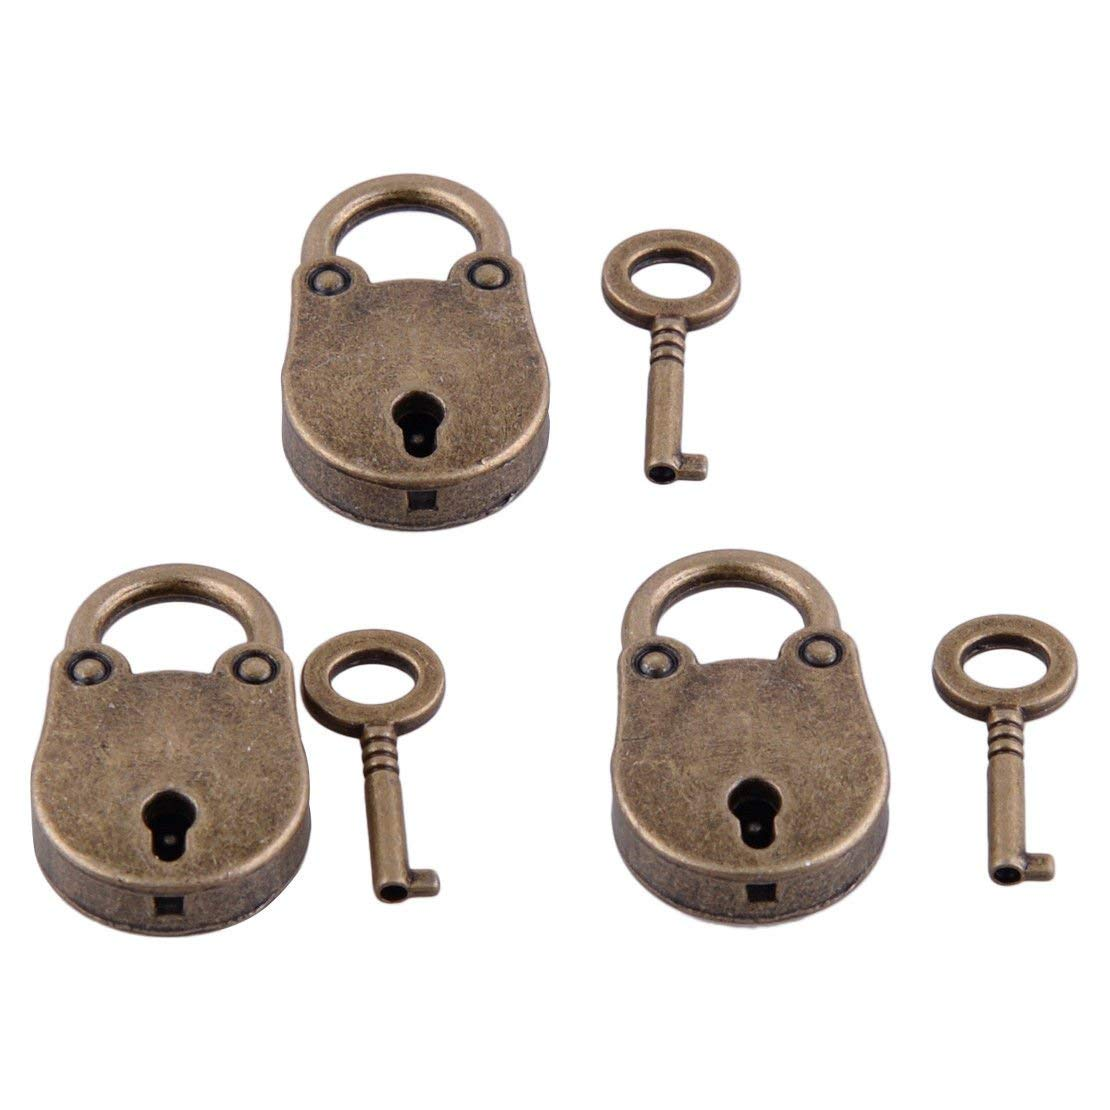 12363af239e2 Cheap Mini Lock With Key, find Mini Lock With Key deals on line at ...